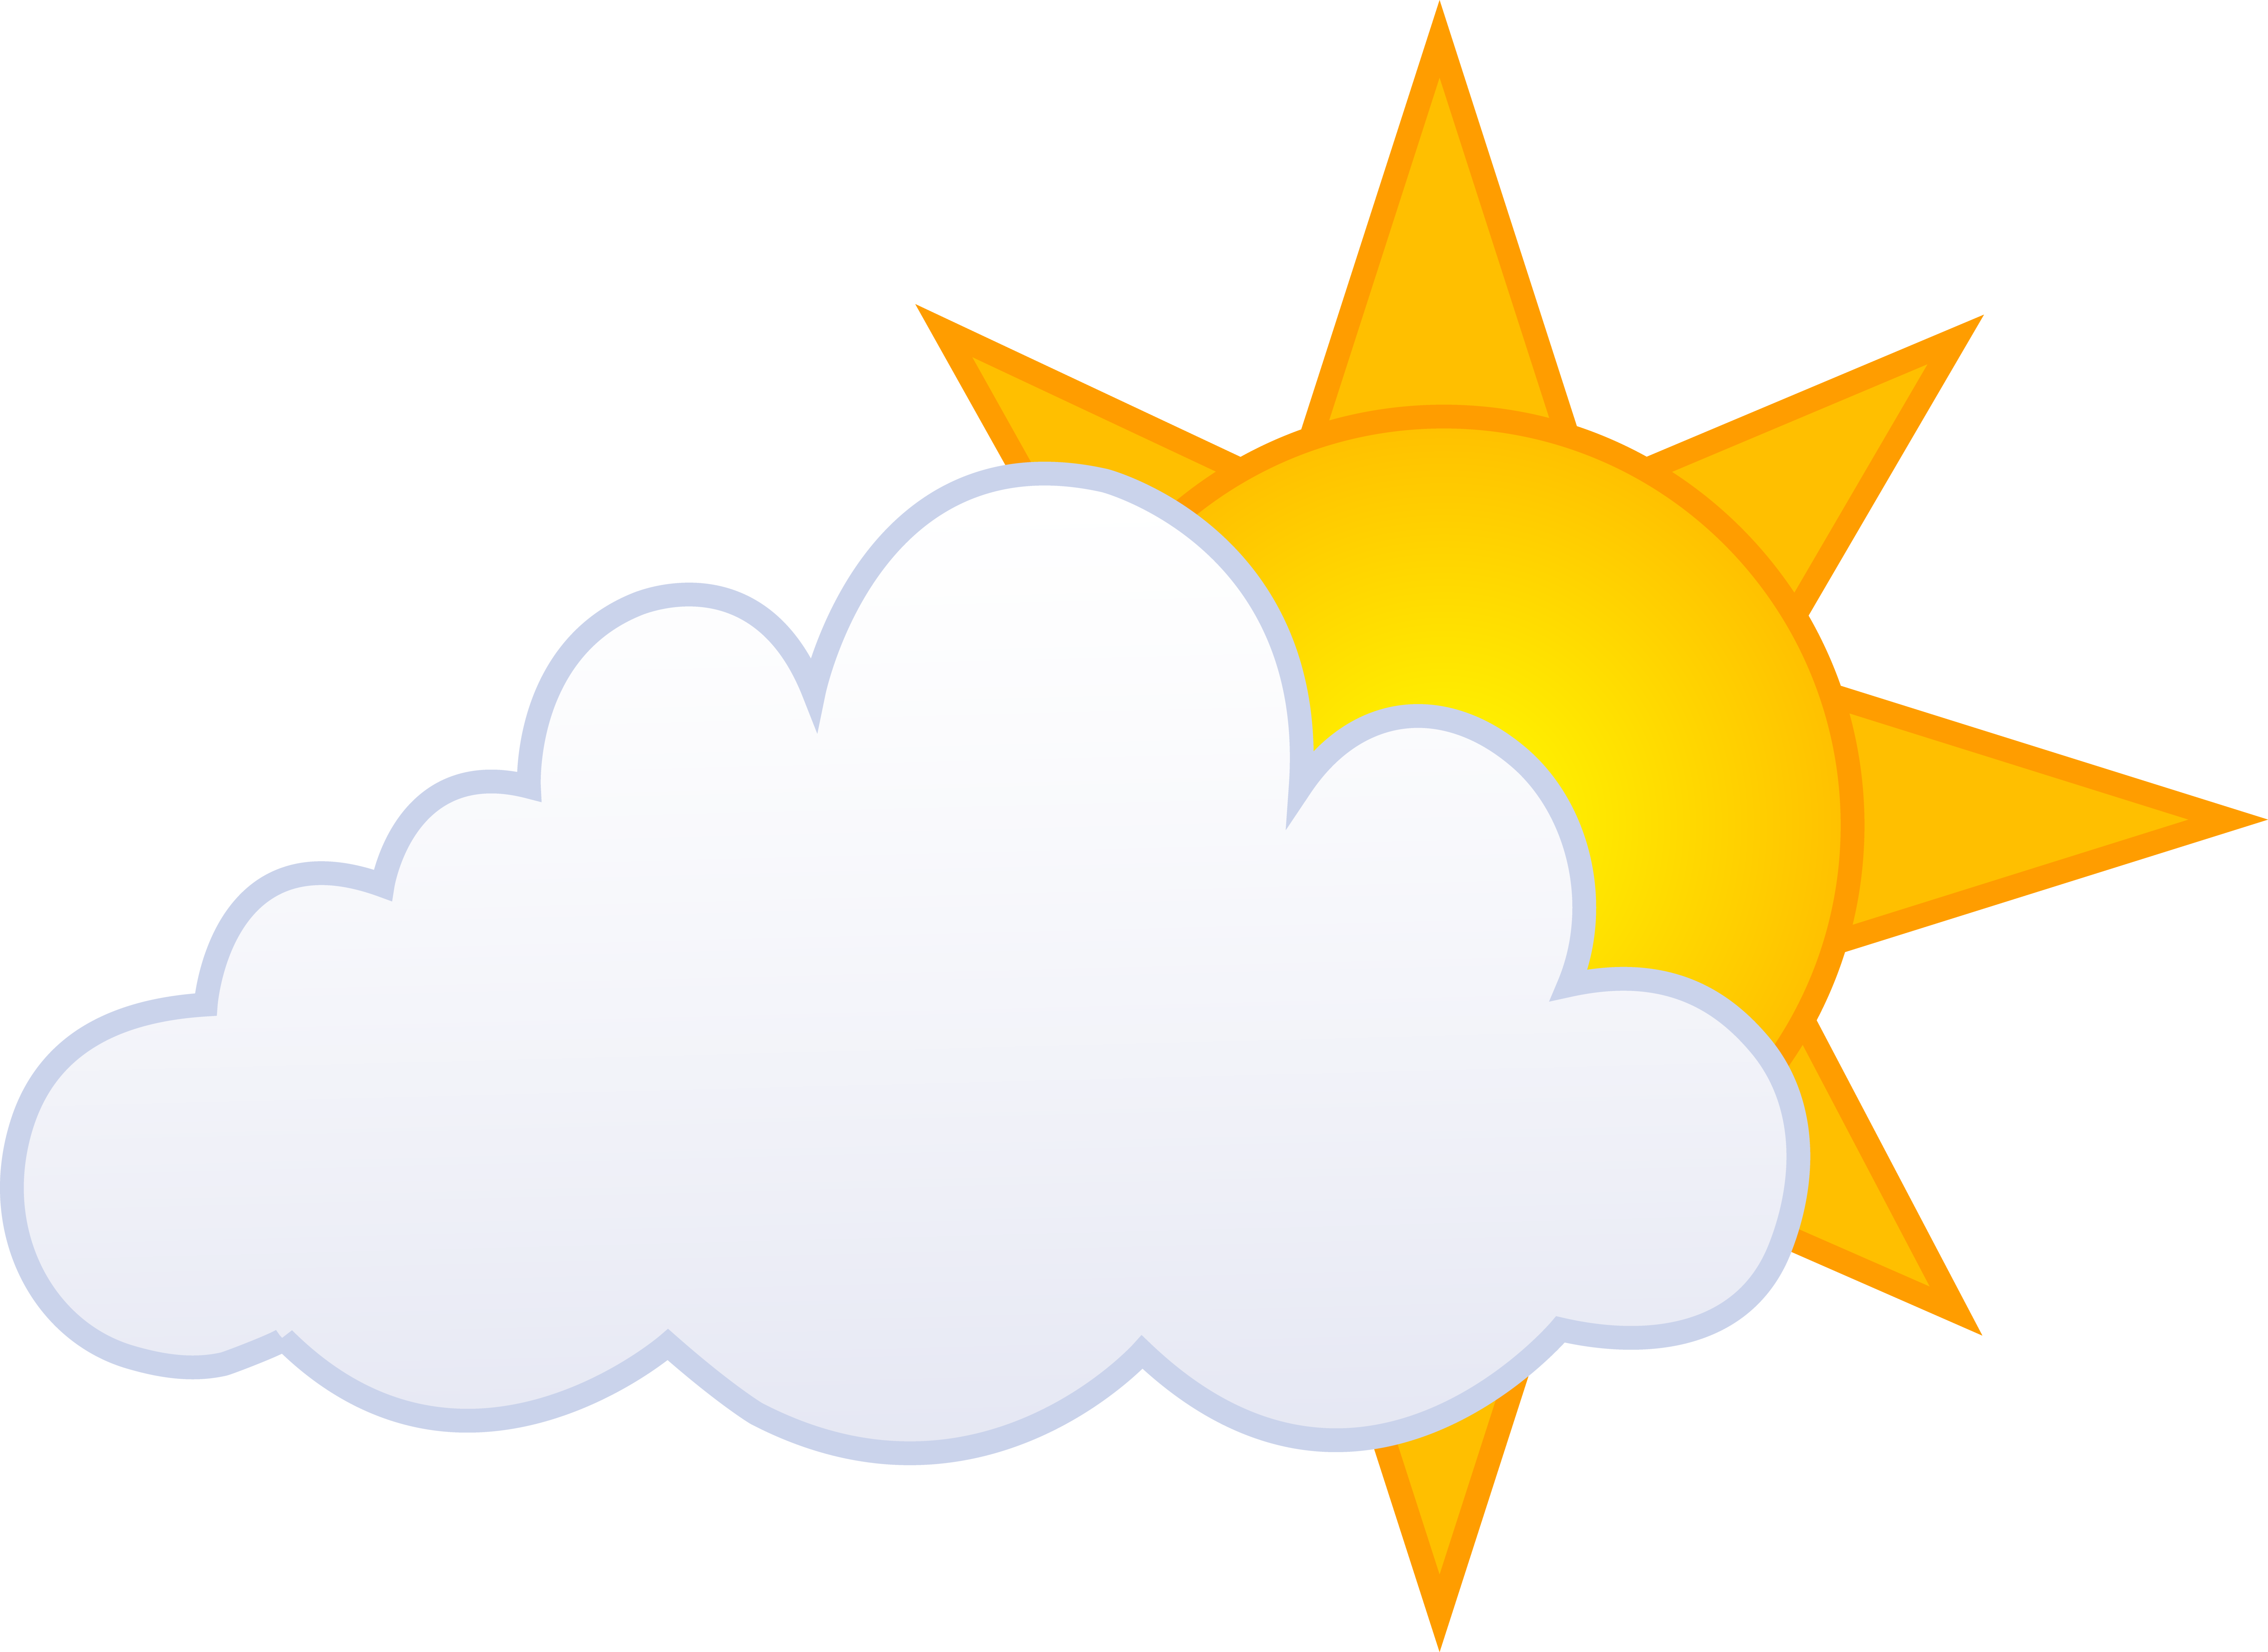 Partly clipart sunny. Weather at getdrawings com